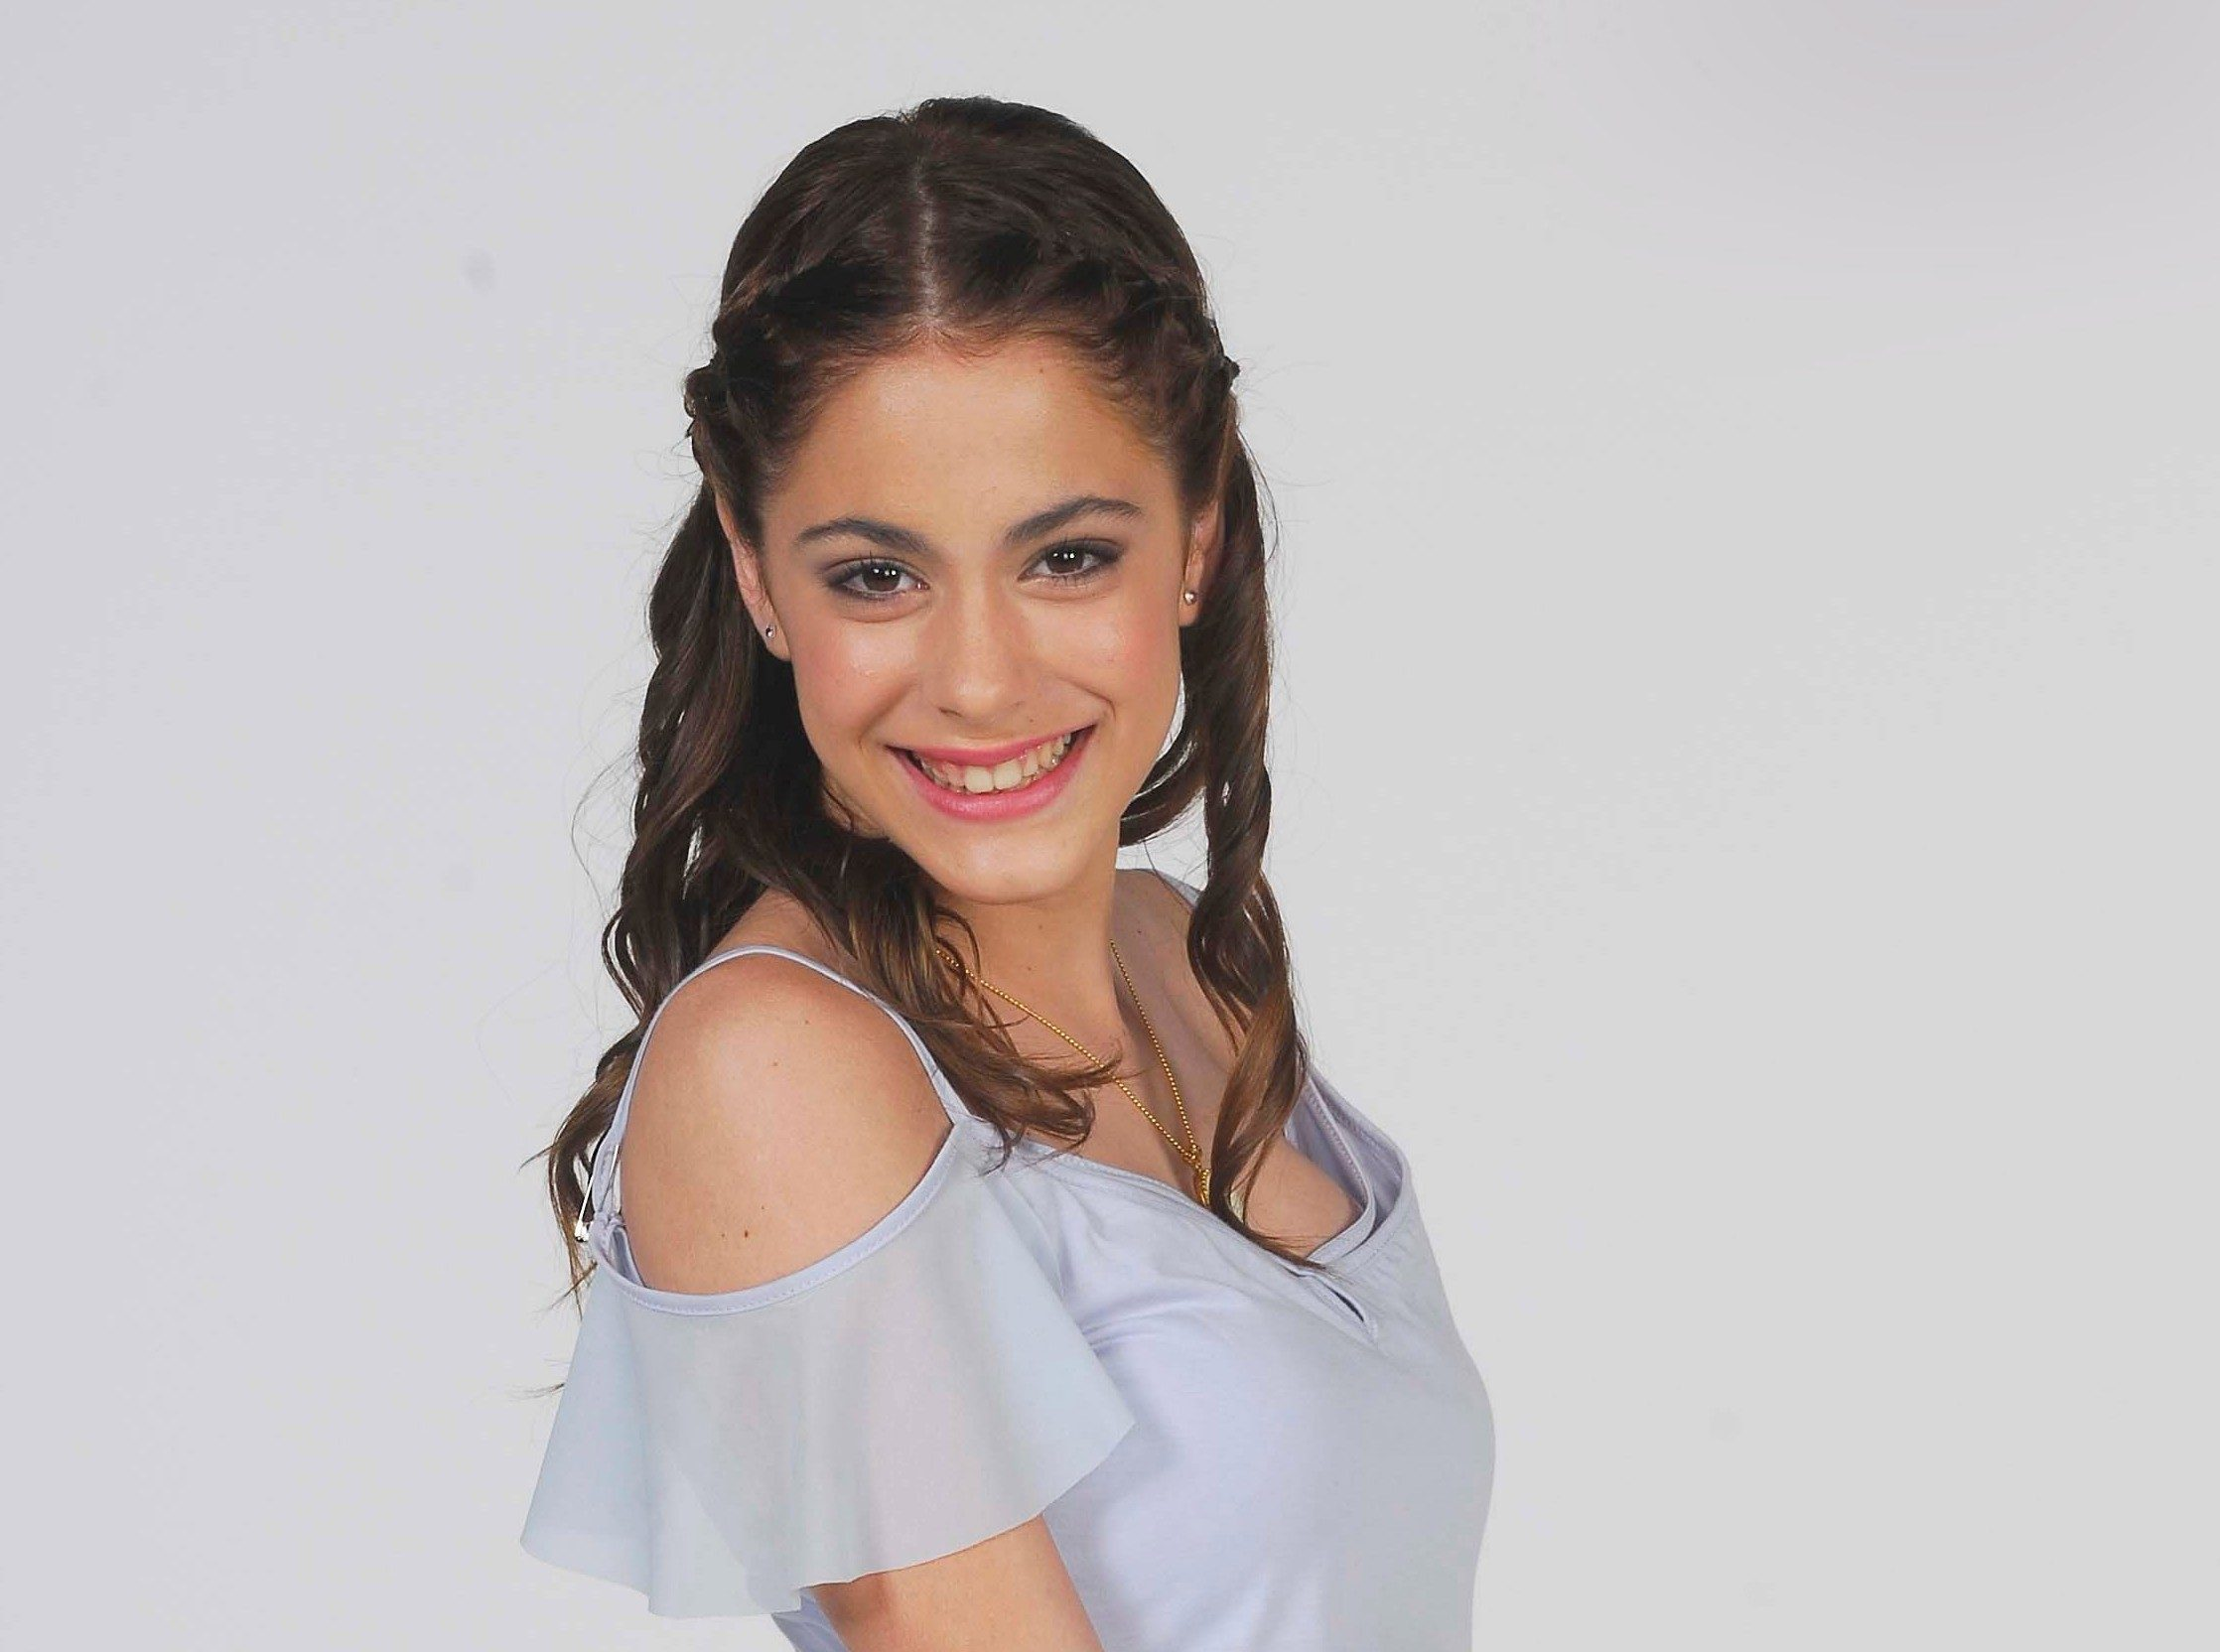 Contratar a Tini Stoessel